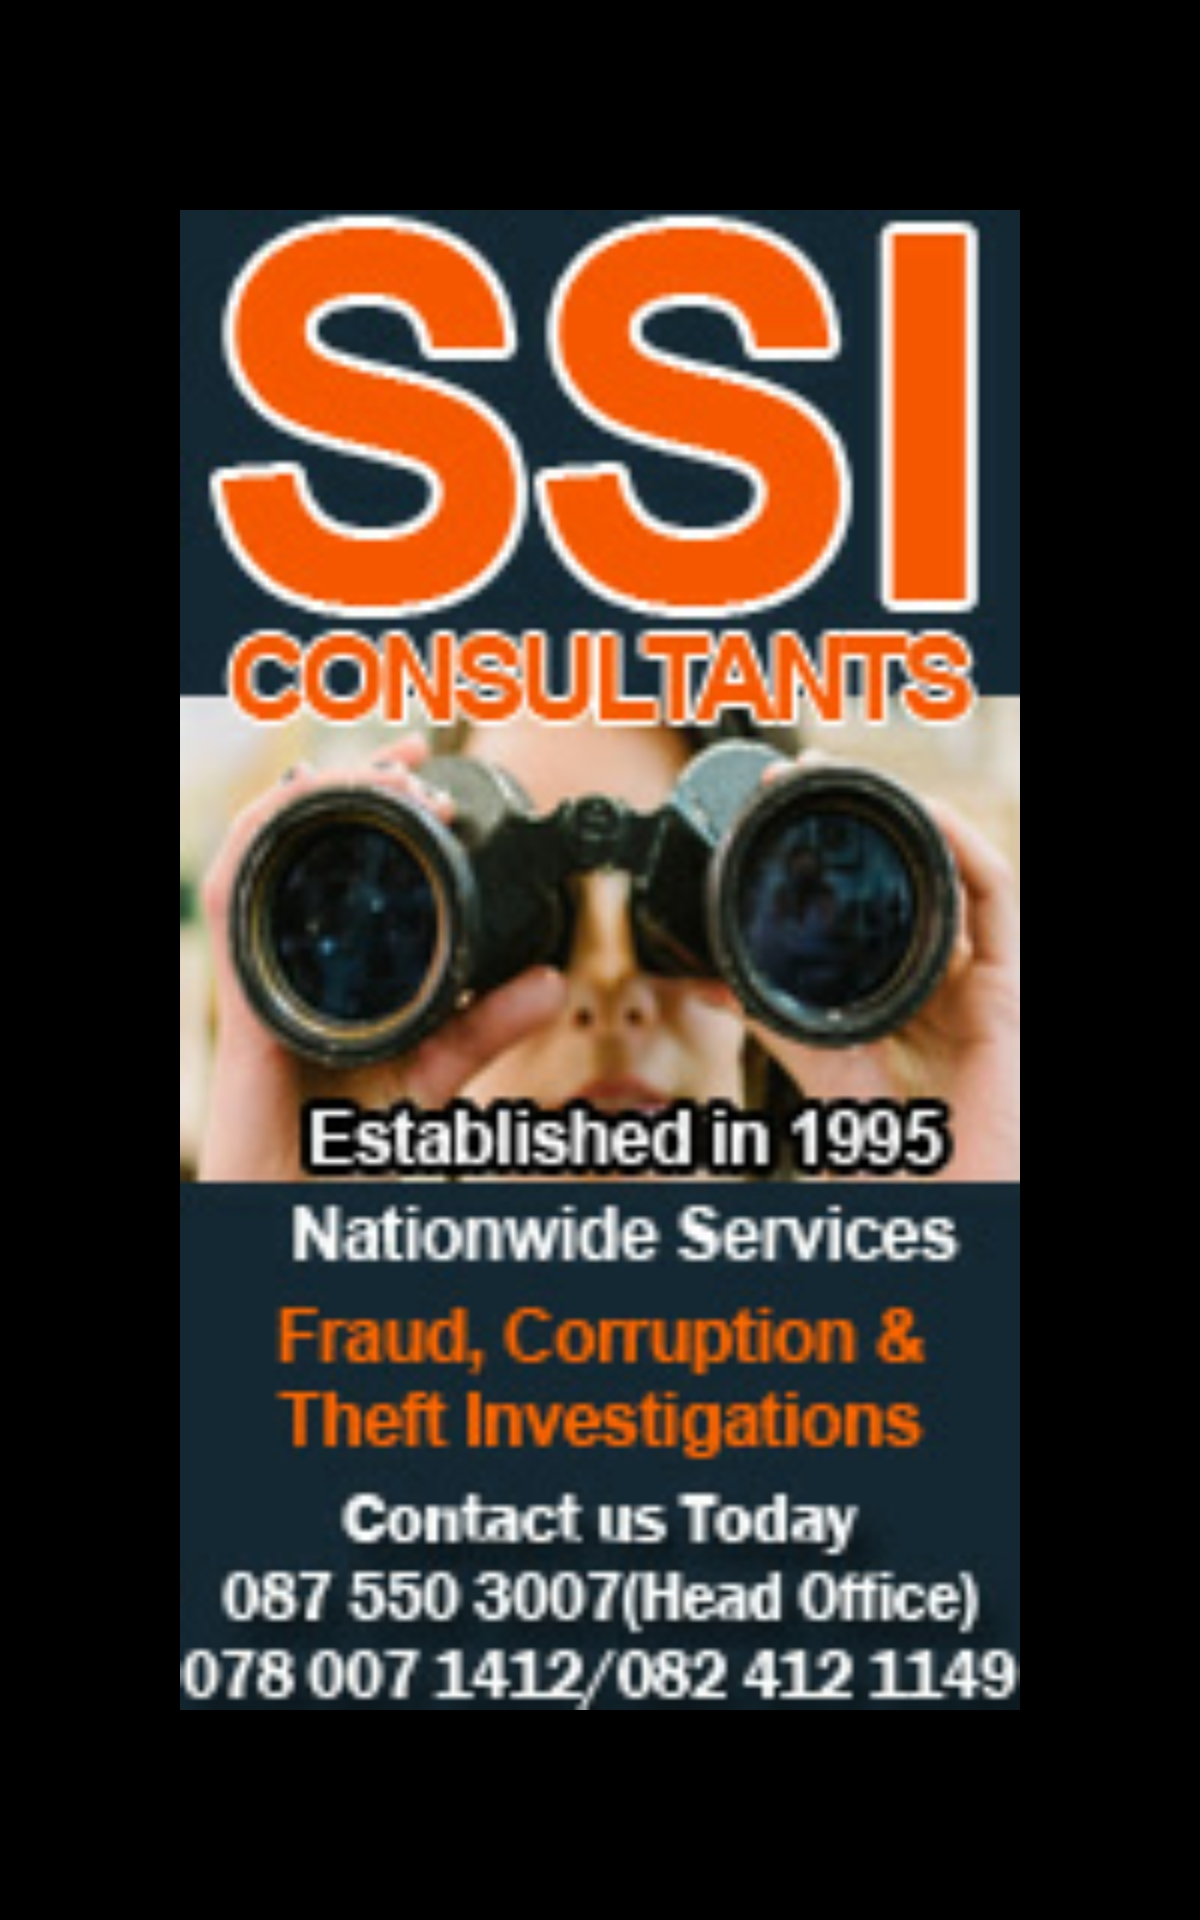 SPECIALISTS PRIVATE INVESTIGATORS AND GUARANTEED PROFESSIONALS 24/7 PRIVATE INVESTIGATORS TOP DETECTIVES  0780071412 CREDIT CARDS ACCEPTED